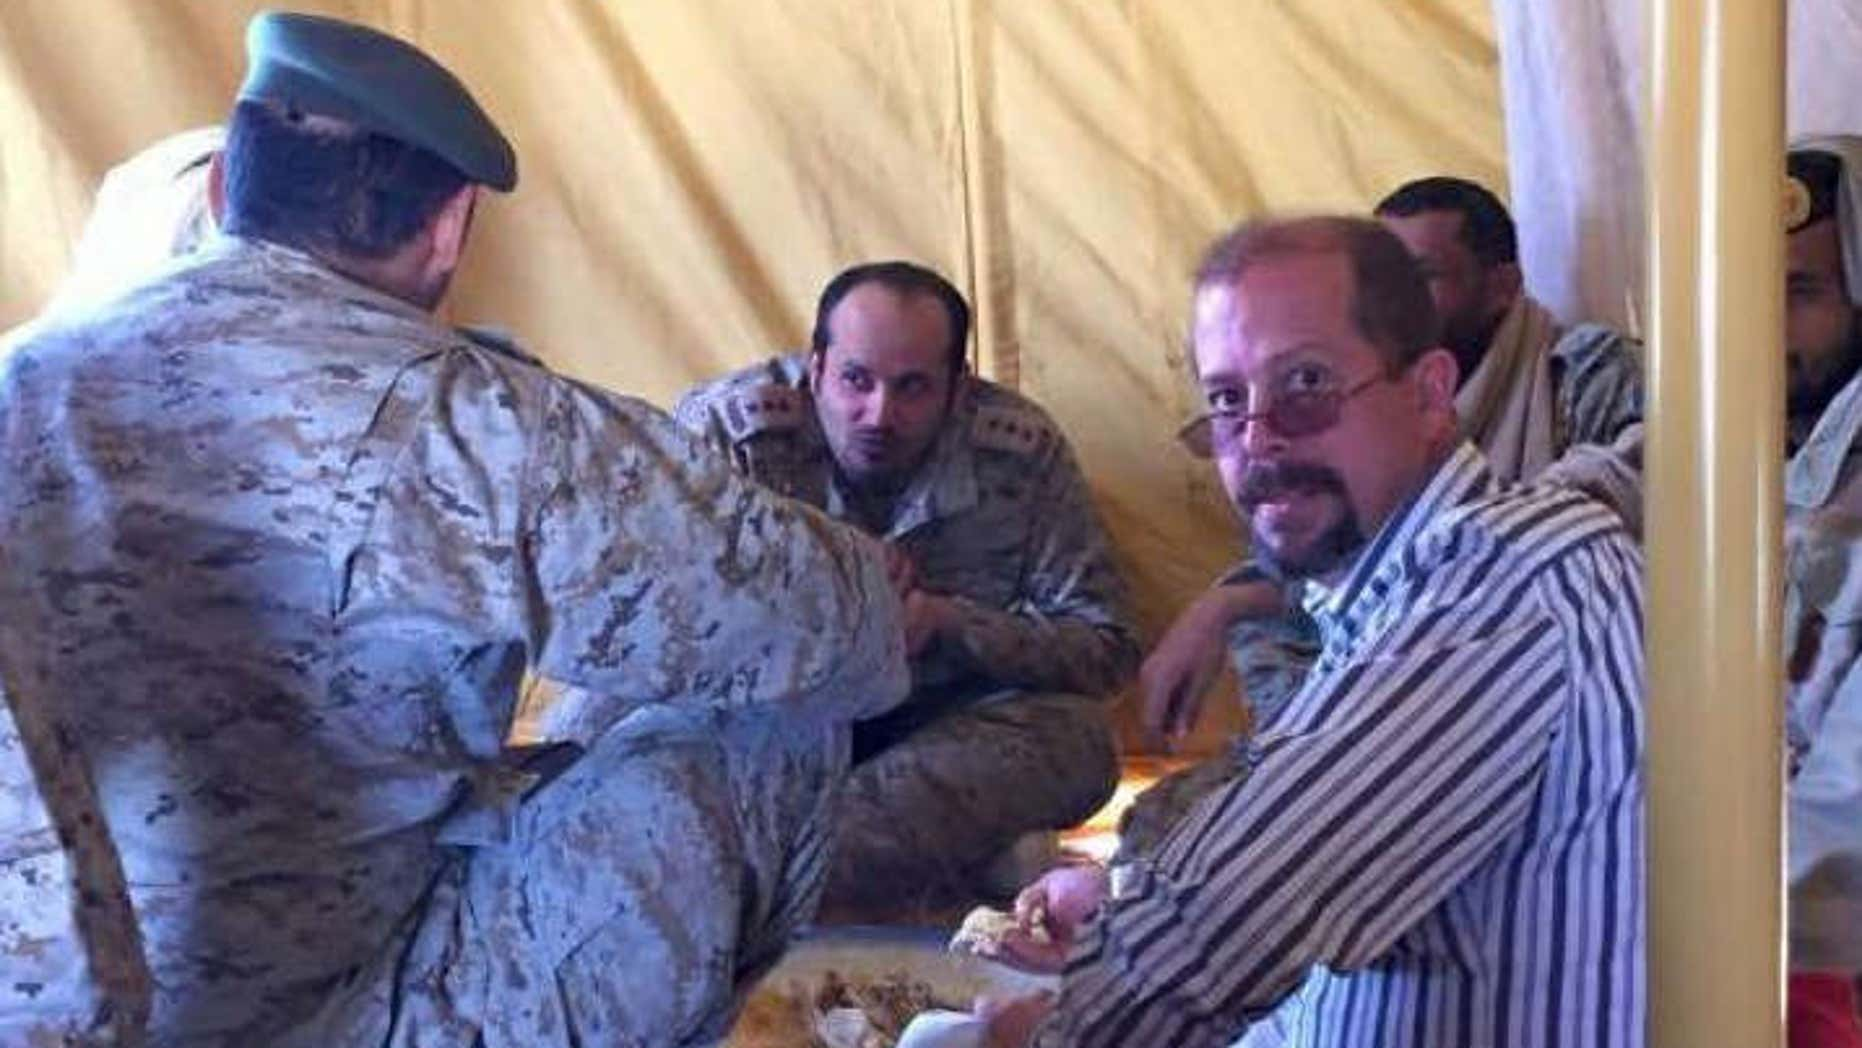 US defense contract worker Chris Cramer in a picture taken just days before his body was found outside his hotel in Tabuk, Saudi Arabia.